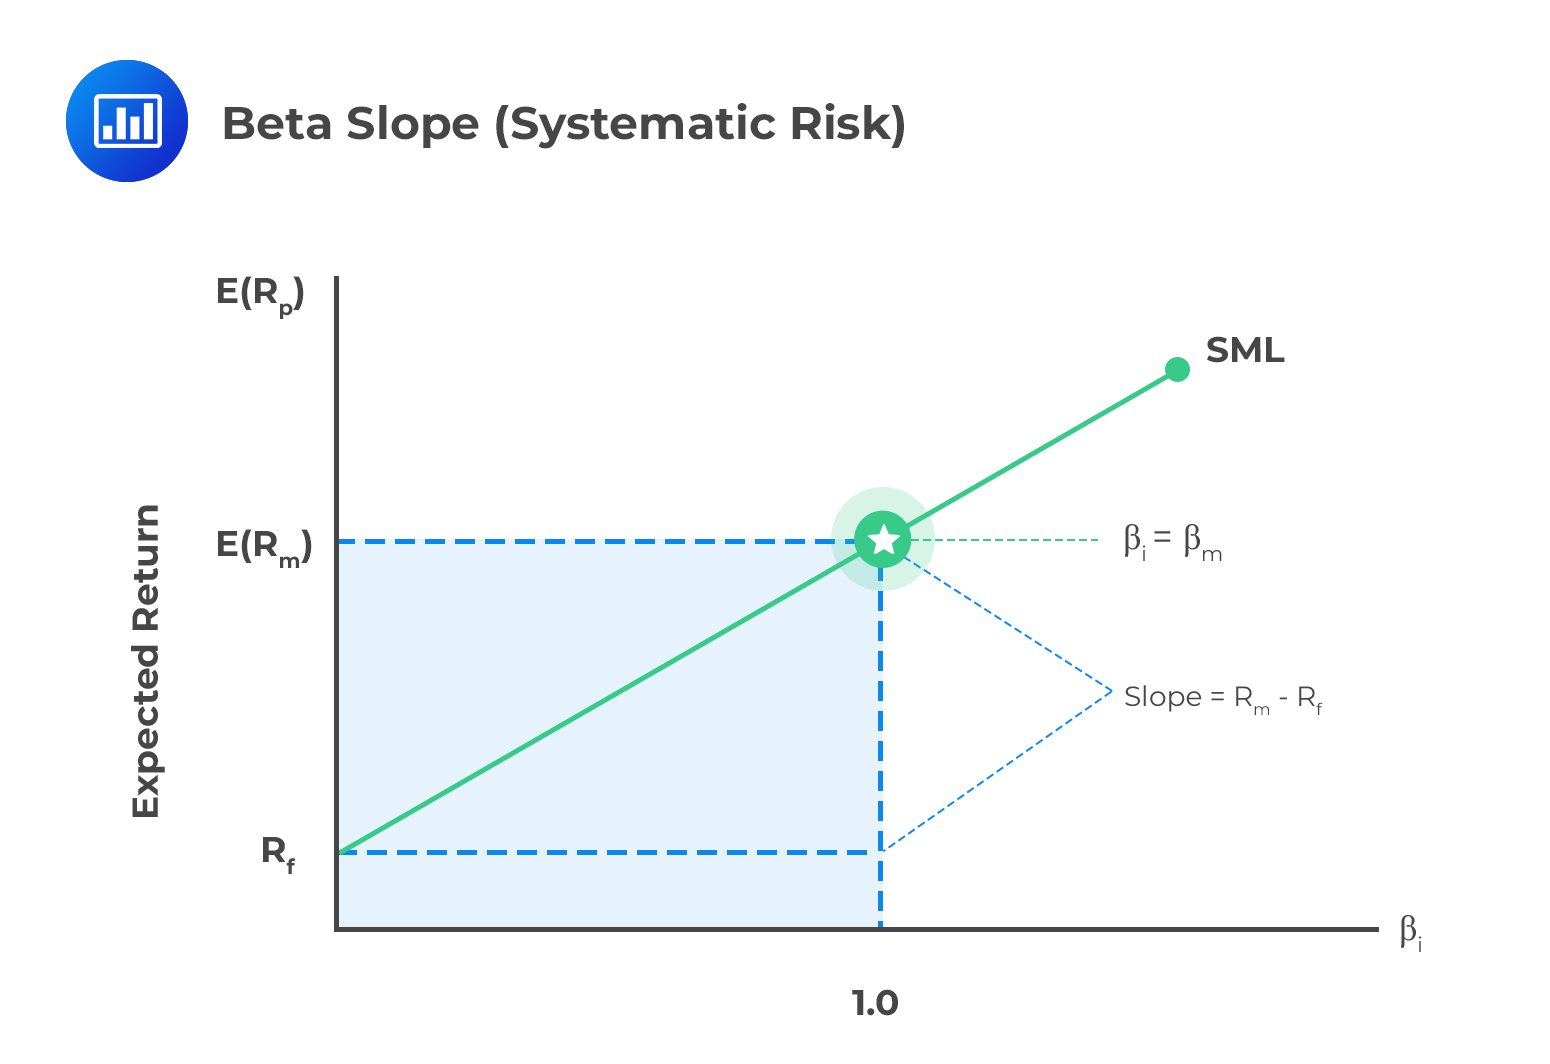 Beta Slope Systematic Risk